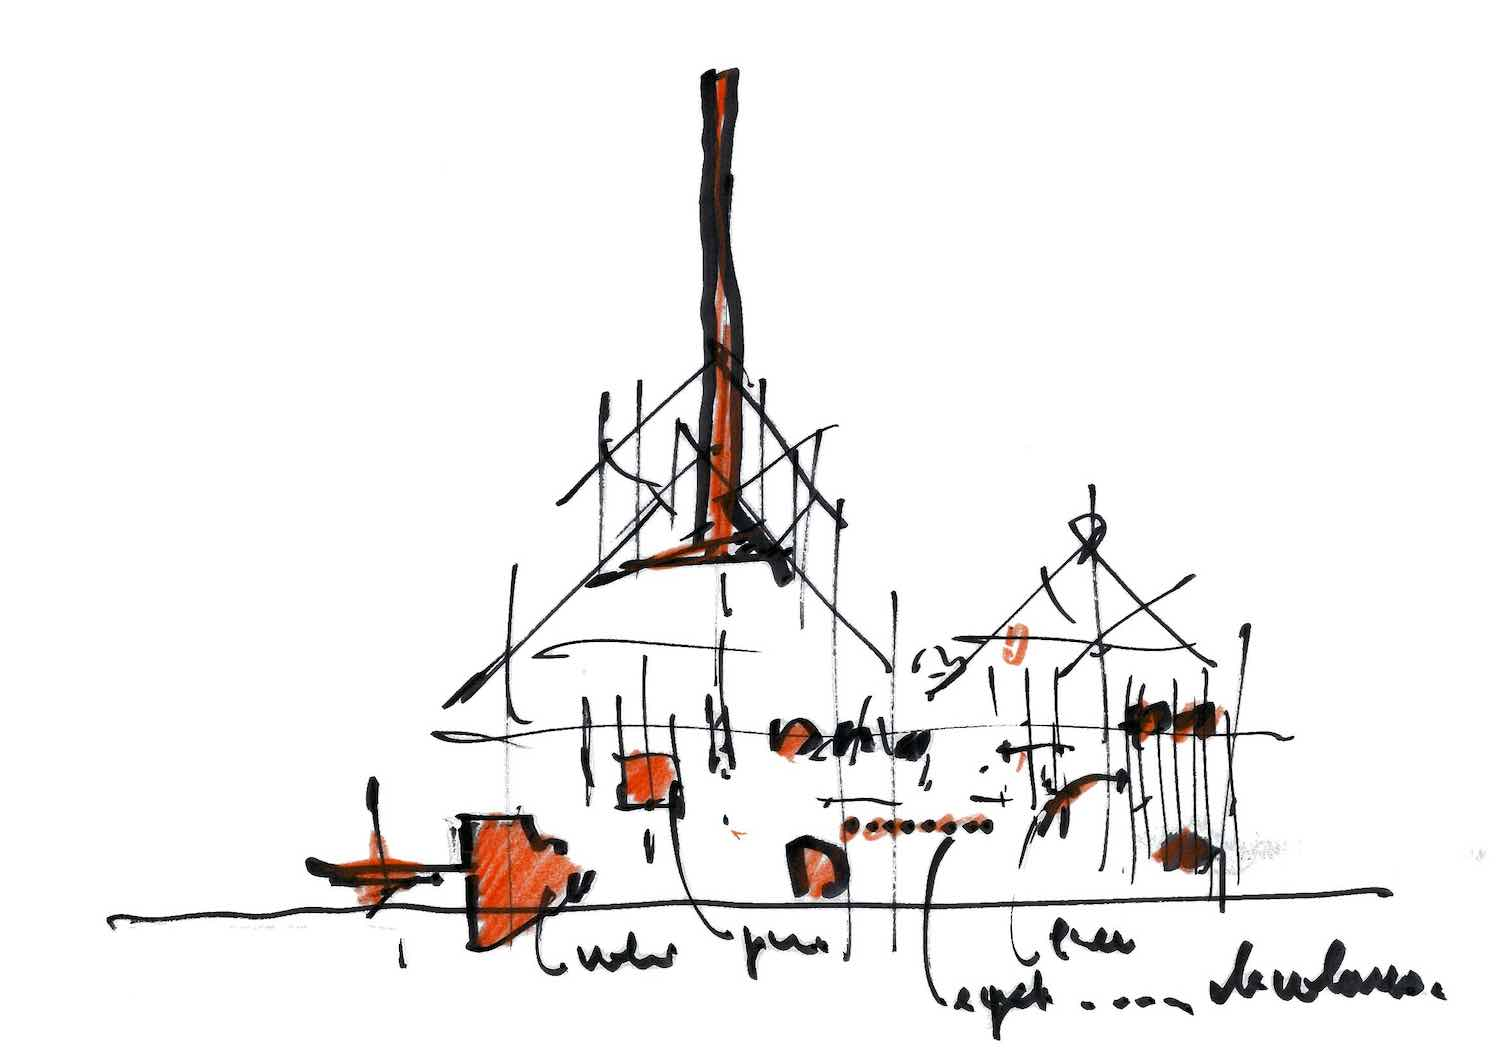 GES-2 sketch by Renzo Piano Building Workshop - Courtesy of V-A-C- Foundation